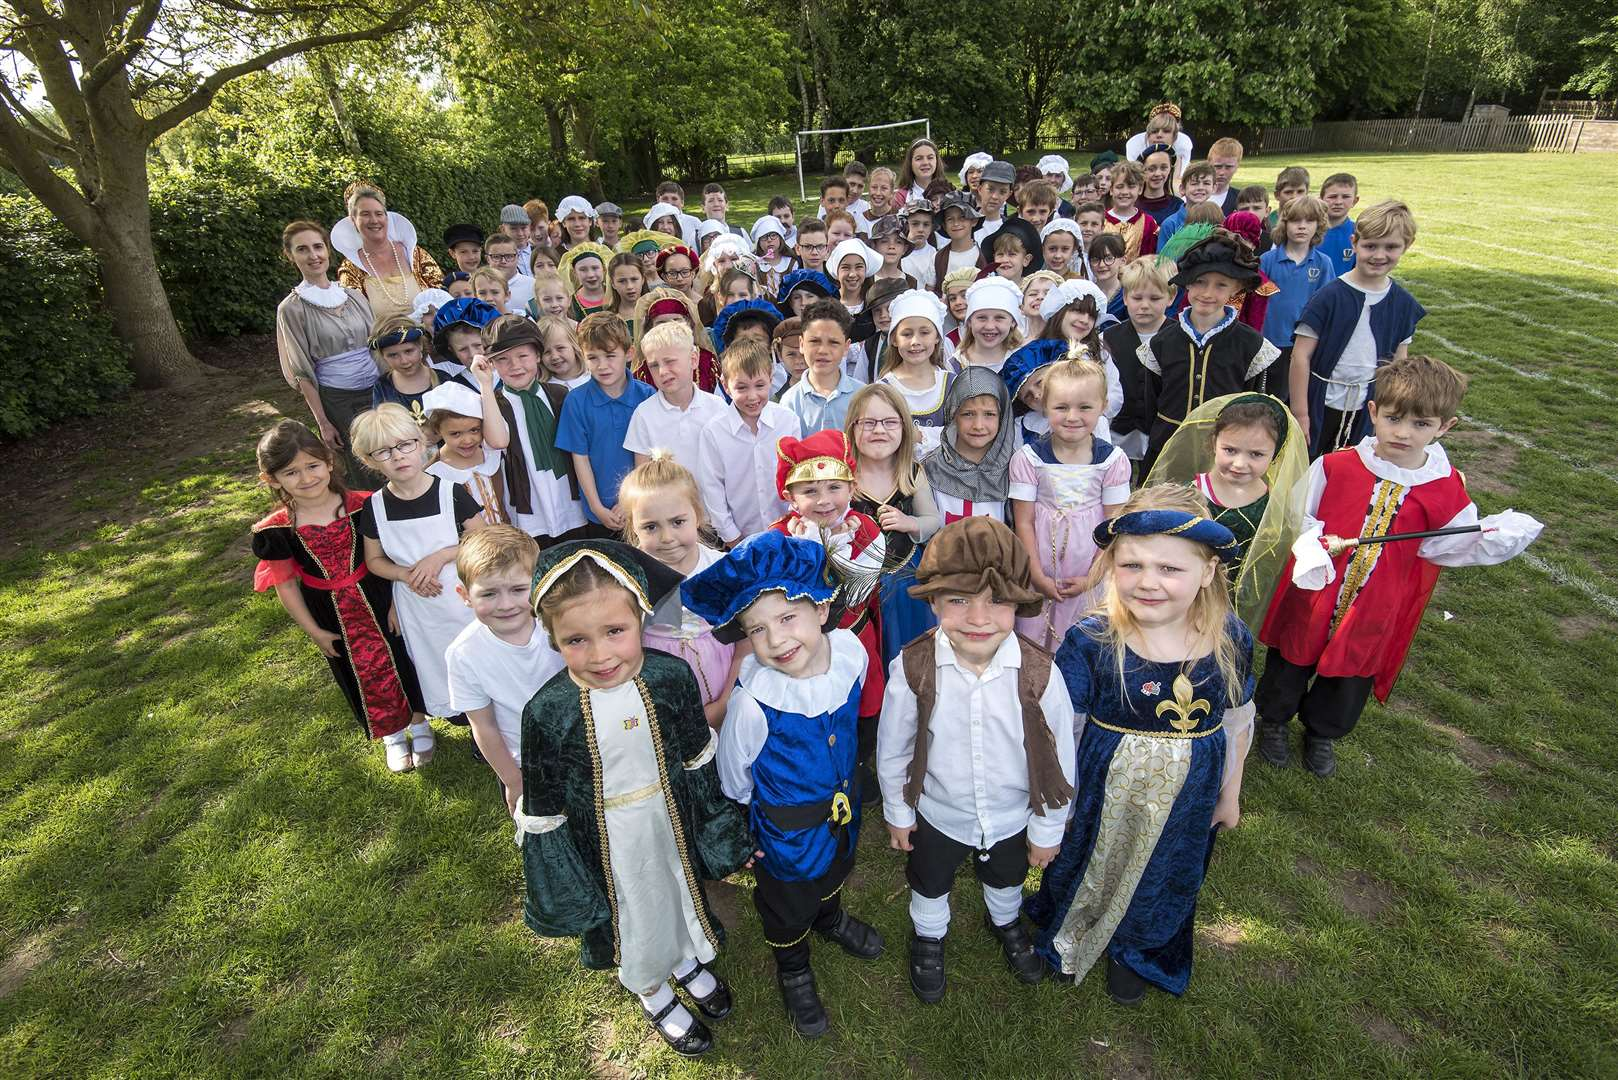 Thurlow Primary School pupils dressed in Tudor clothing as part of the Soame400 celebrations. Picture by Mark Westley.